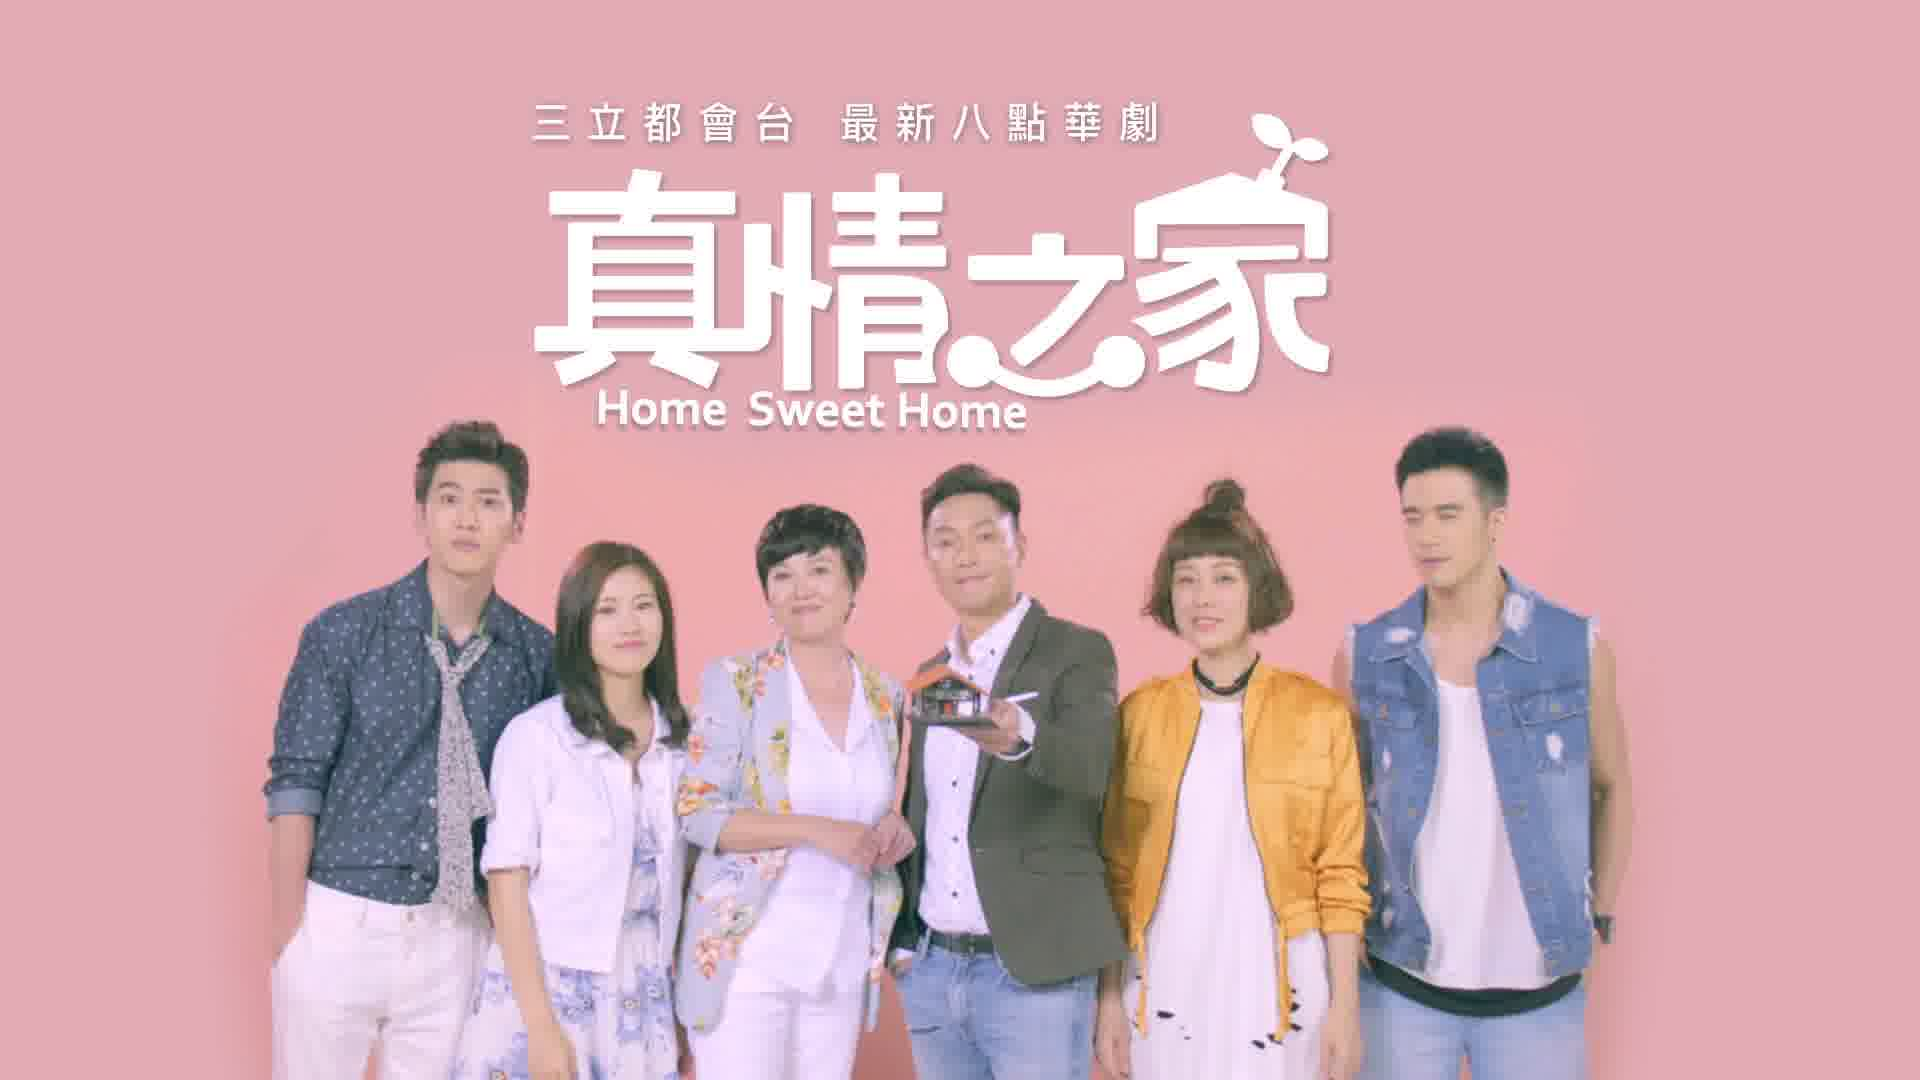 Teaser 2: Home Sweet Home